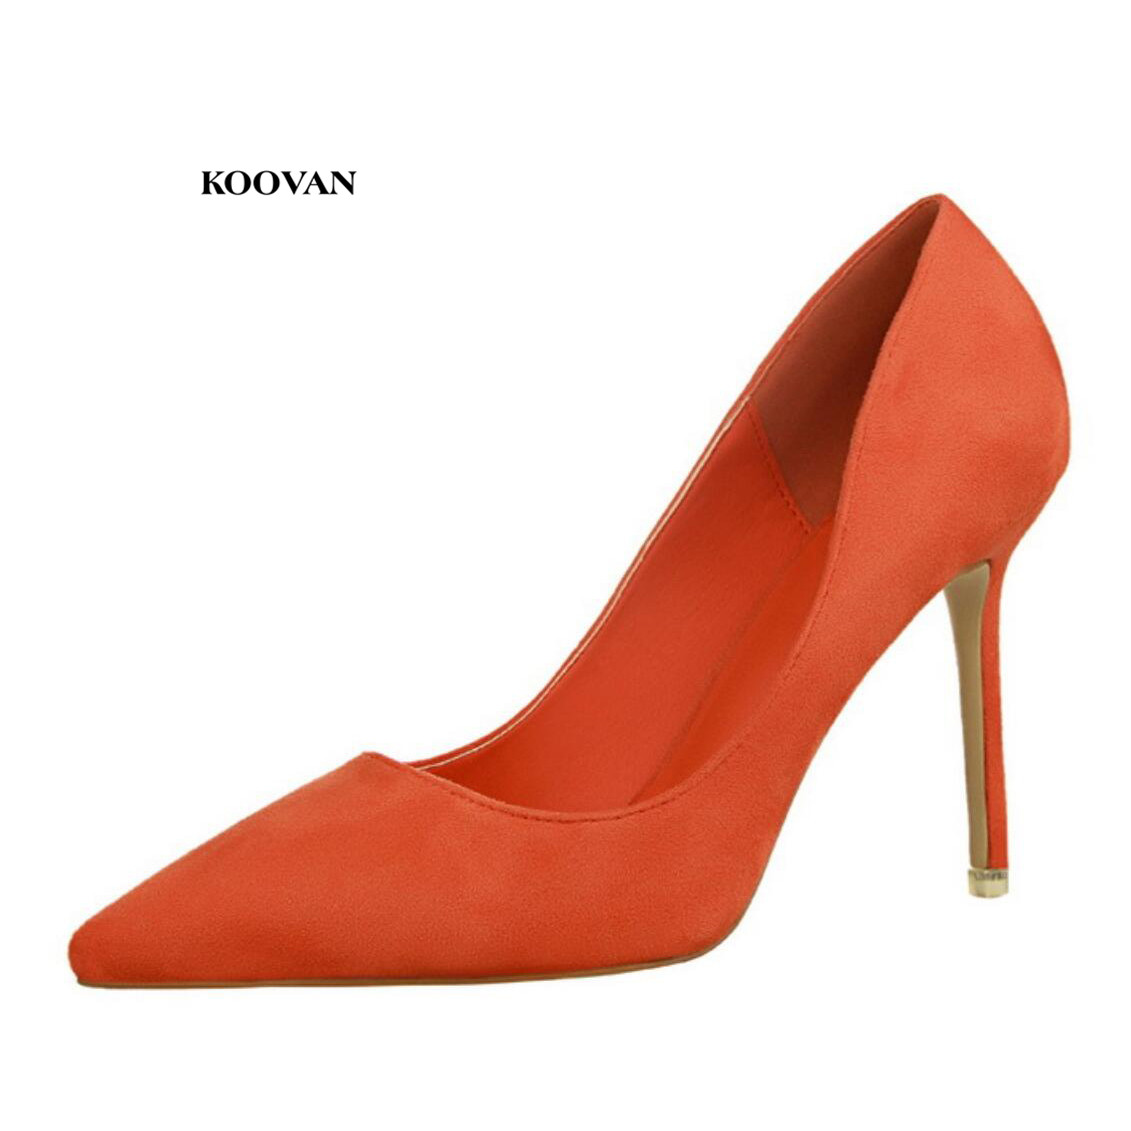 Koovan Women's Pumps 2019 New Fashion Simple High-heel Shallow Pointed Suede Sexy Thin Professional OL Women's Shoes